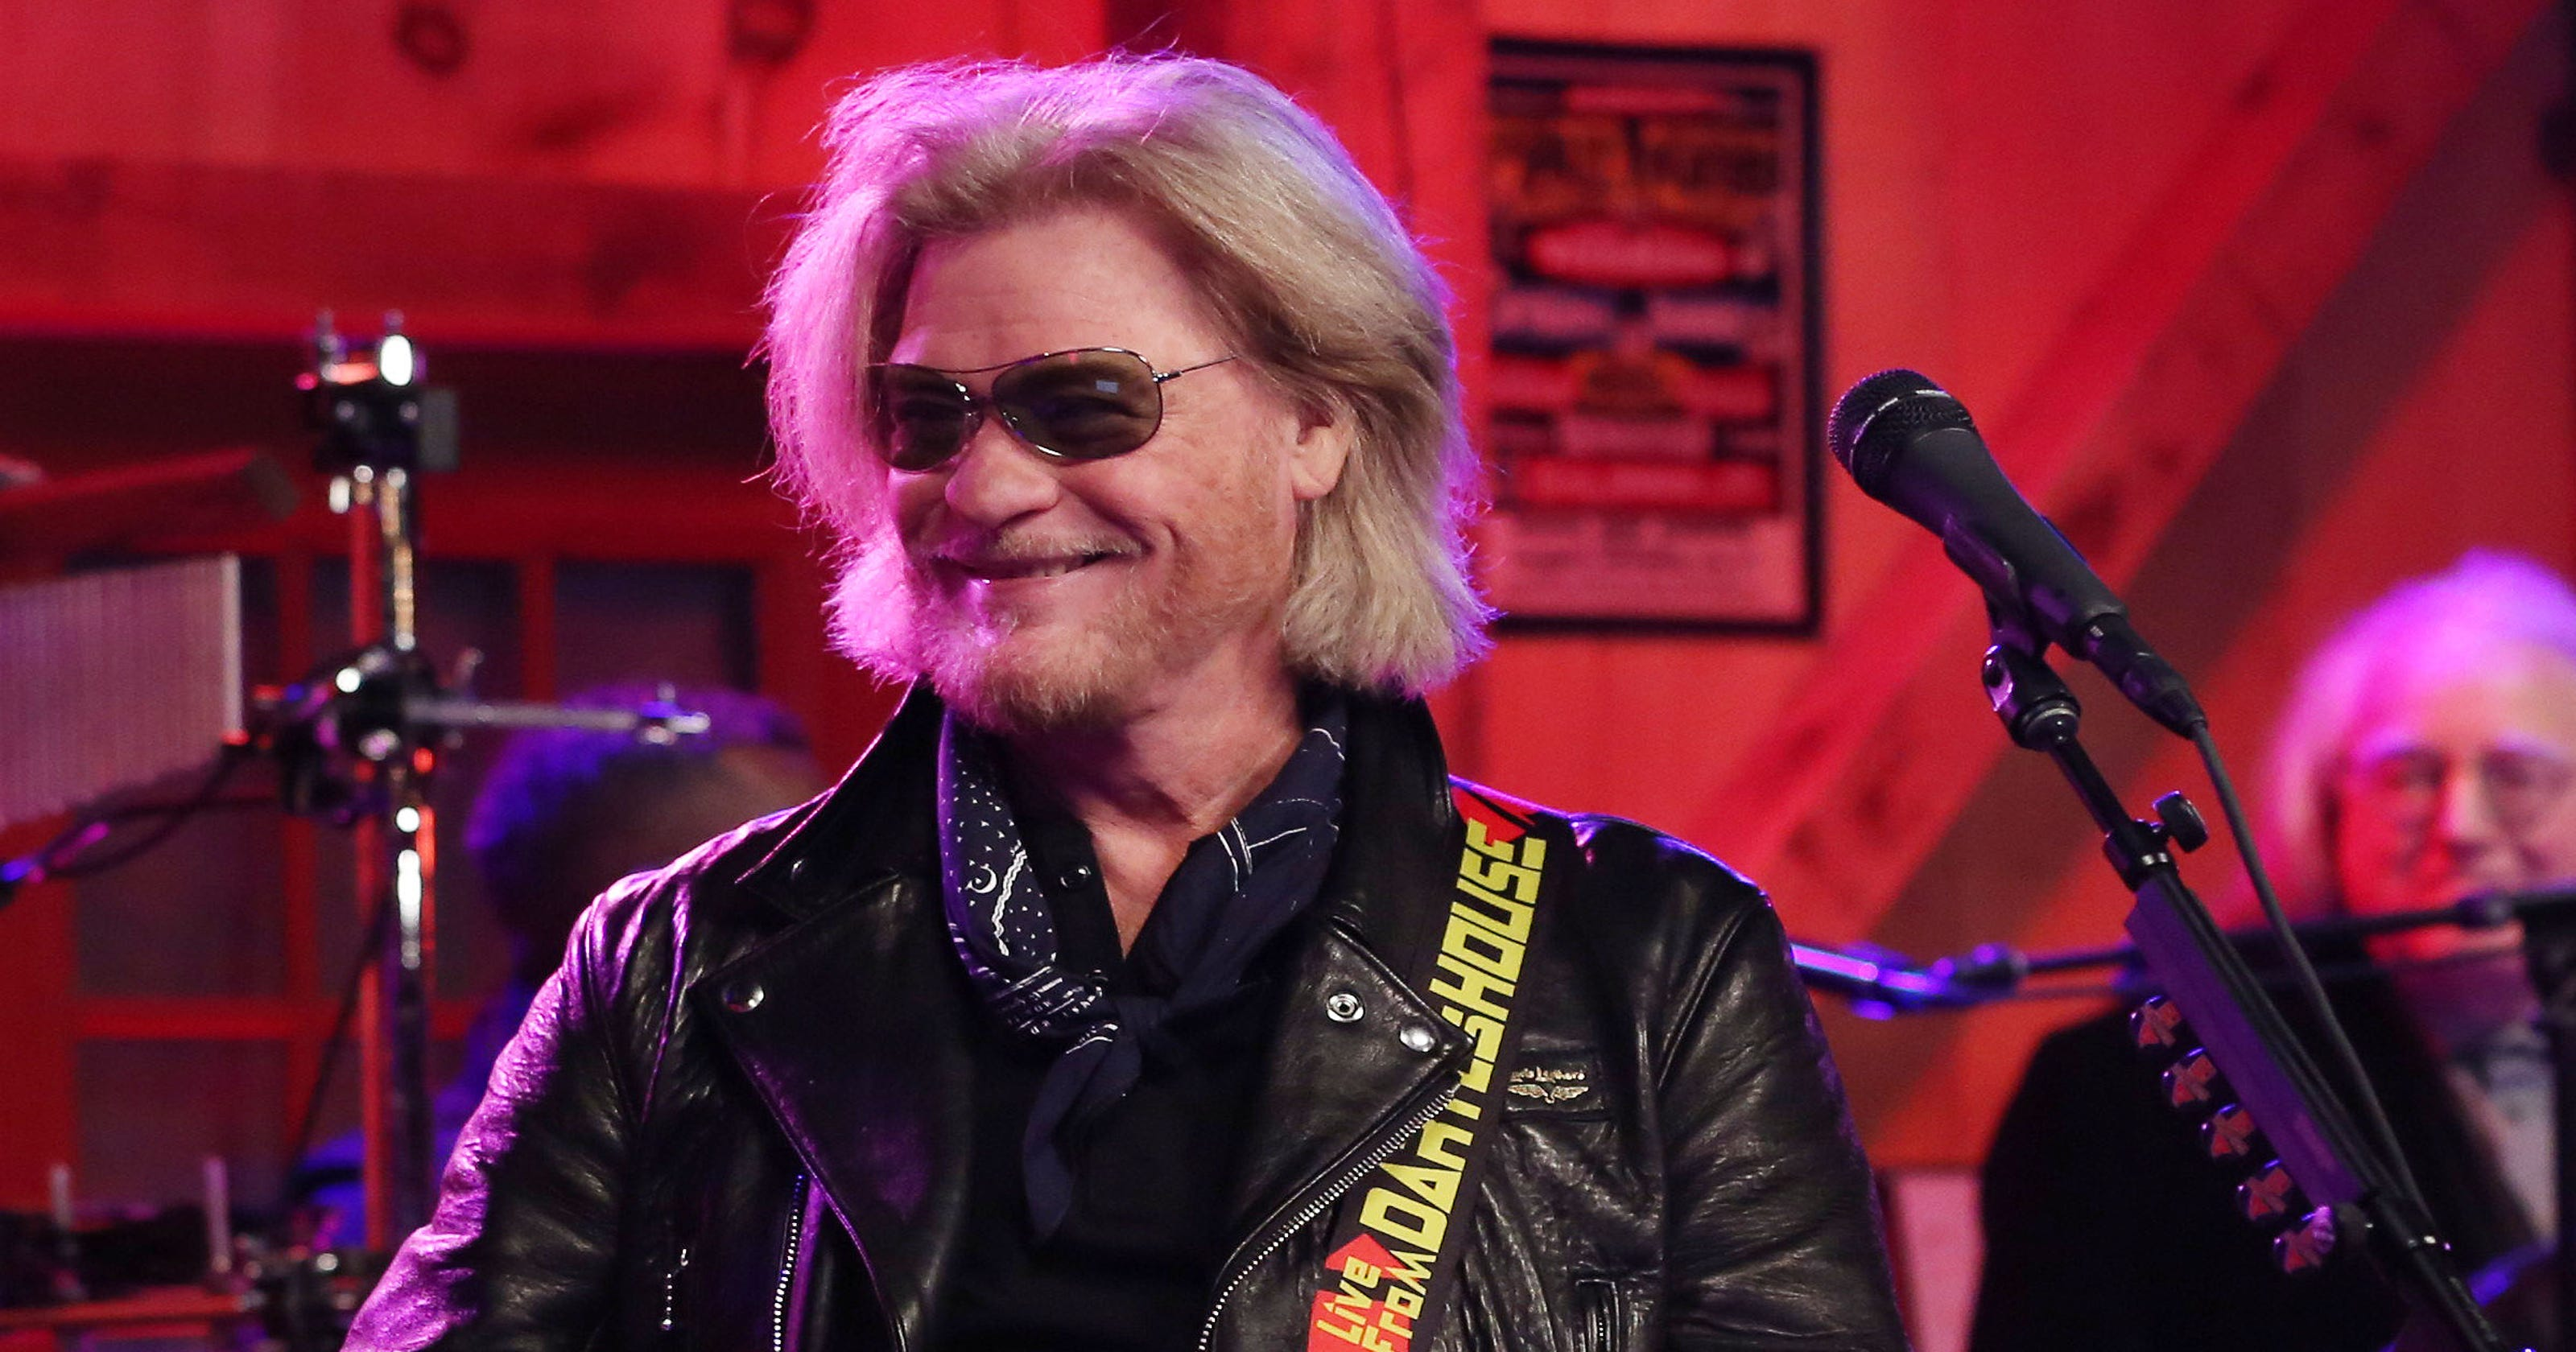 Daryl hall at madison square garden i feel like im home m4hsunfo